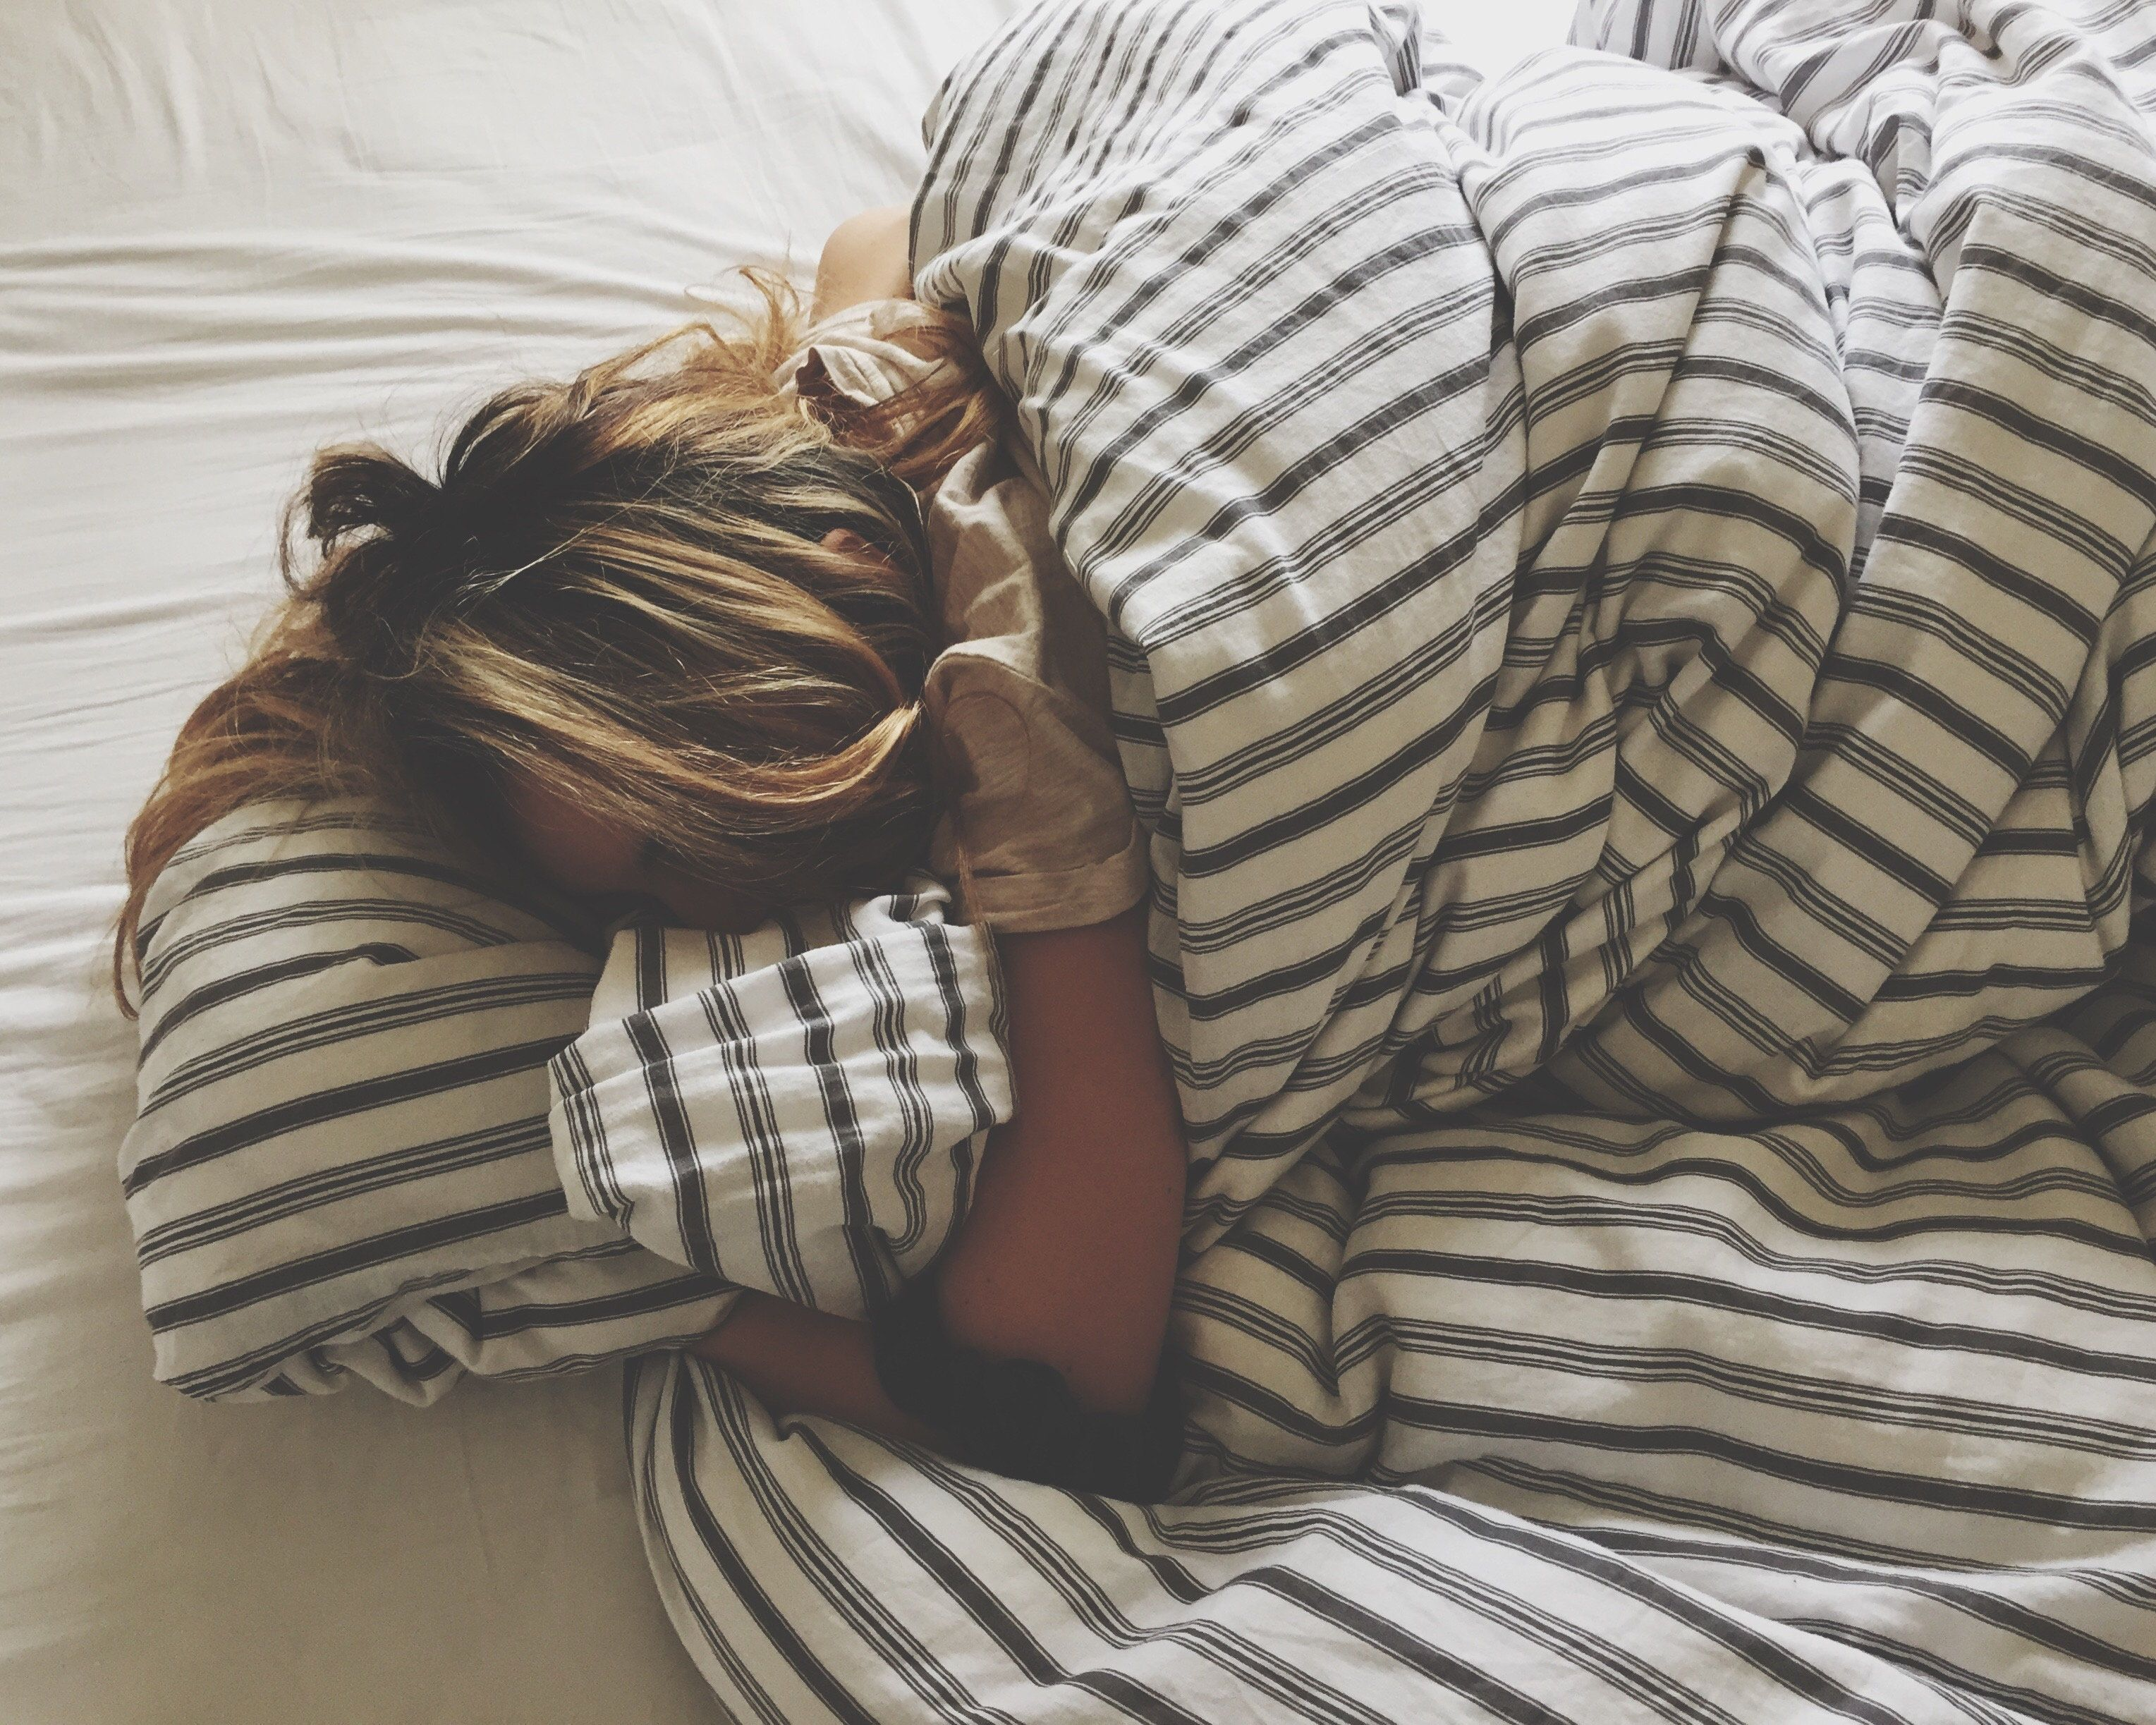 Research shows promise when it comes to CBD and sleep.